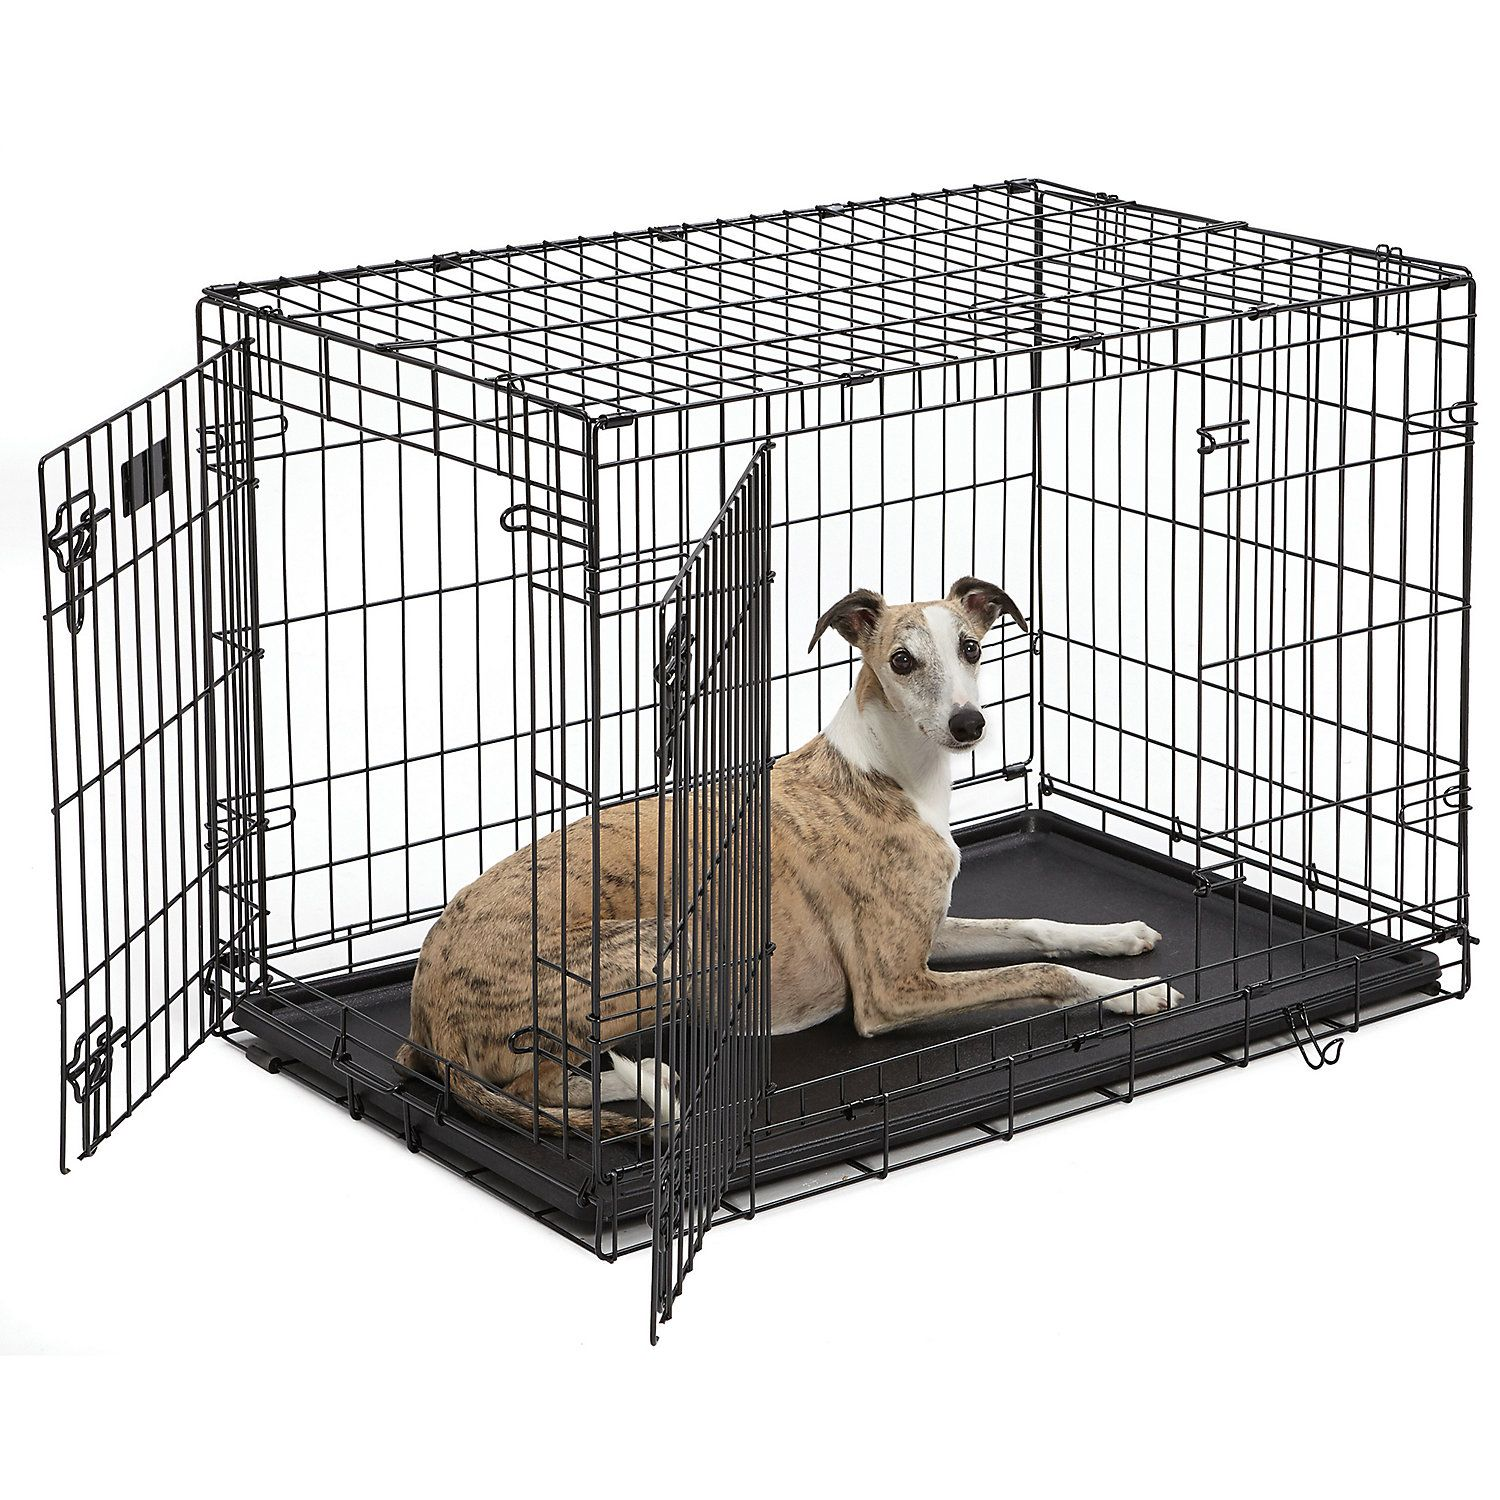 Midwest Icrate Double Door Folding Dog Crate 36 L X 23 W X 25